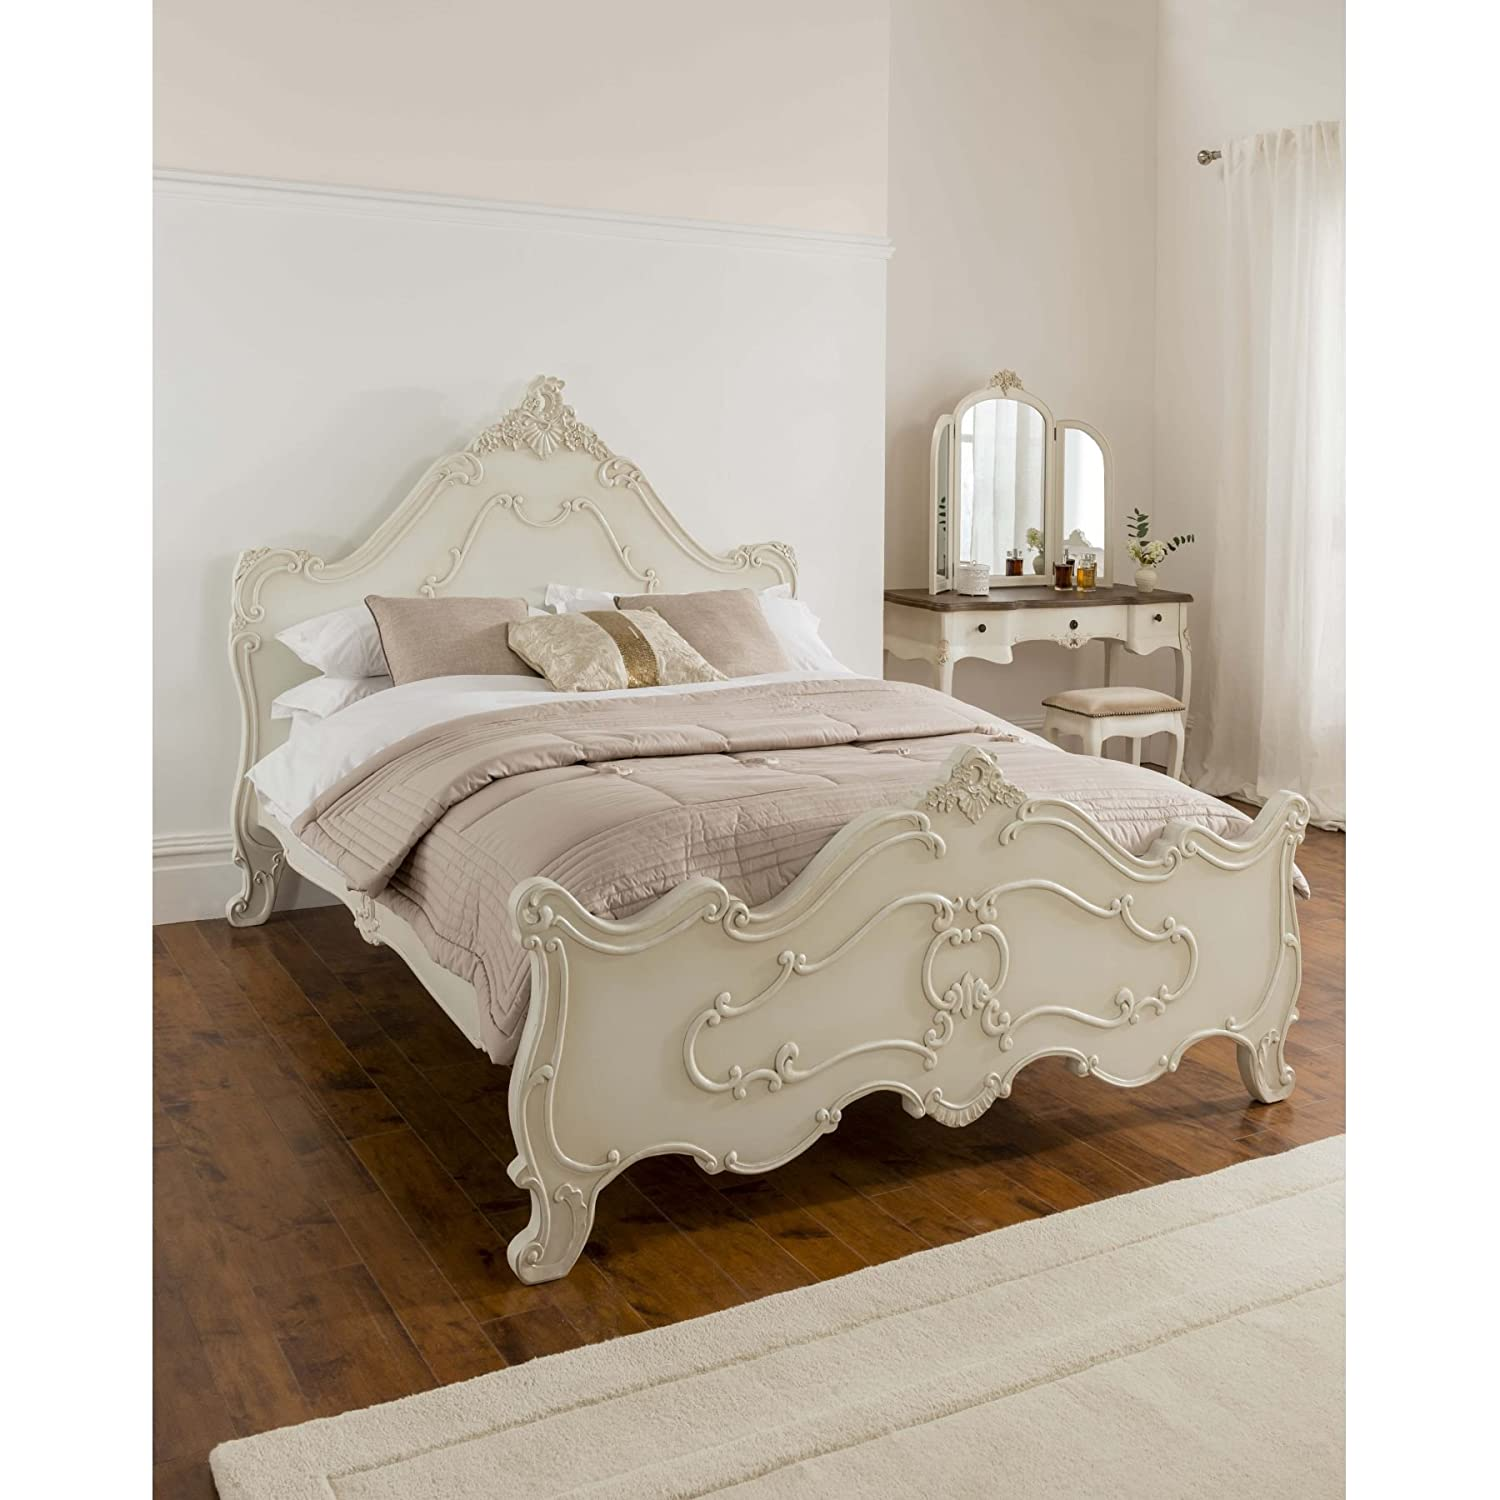 Silver Leaf Bedroom Furniture French Style Bedroom Furniture Ornate Royal Carved Silver Leaf Bed